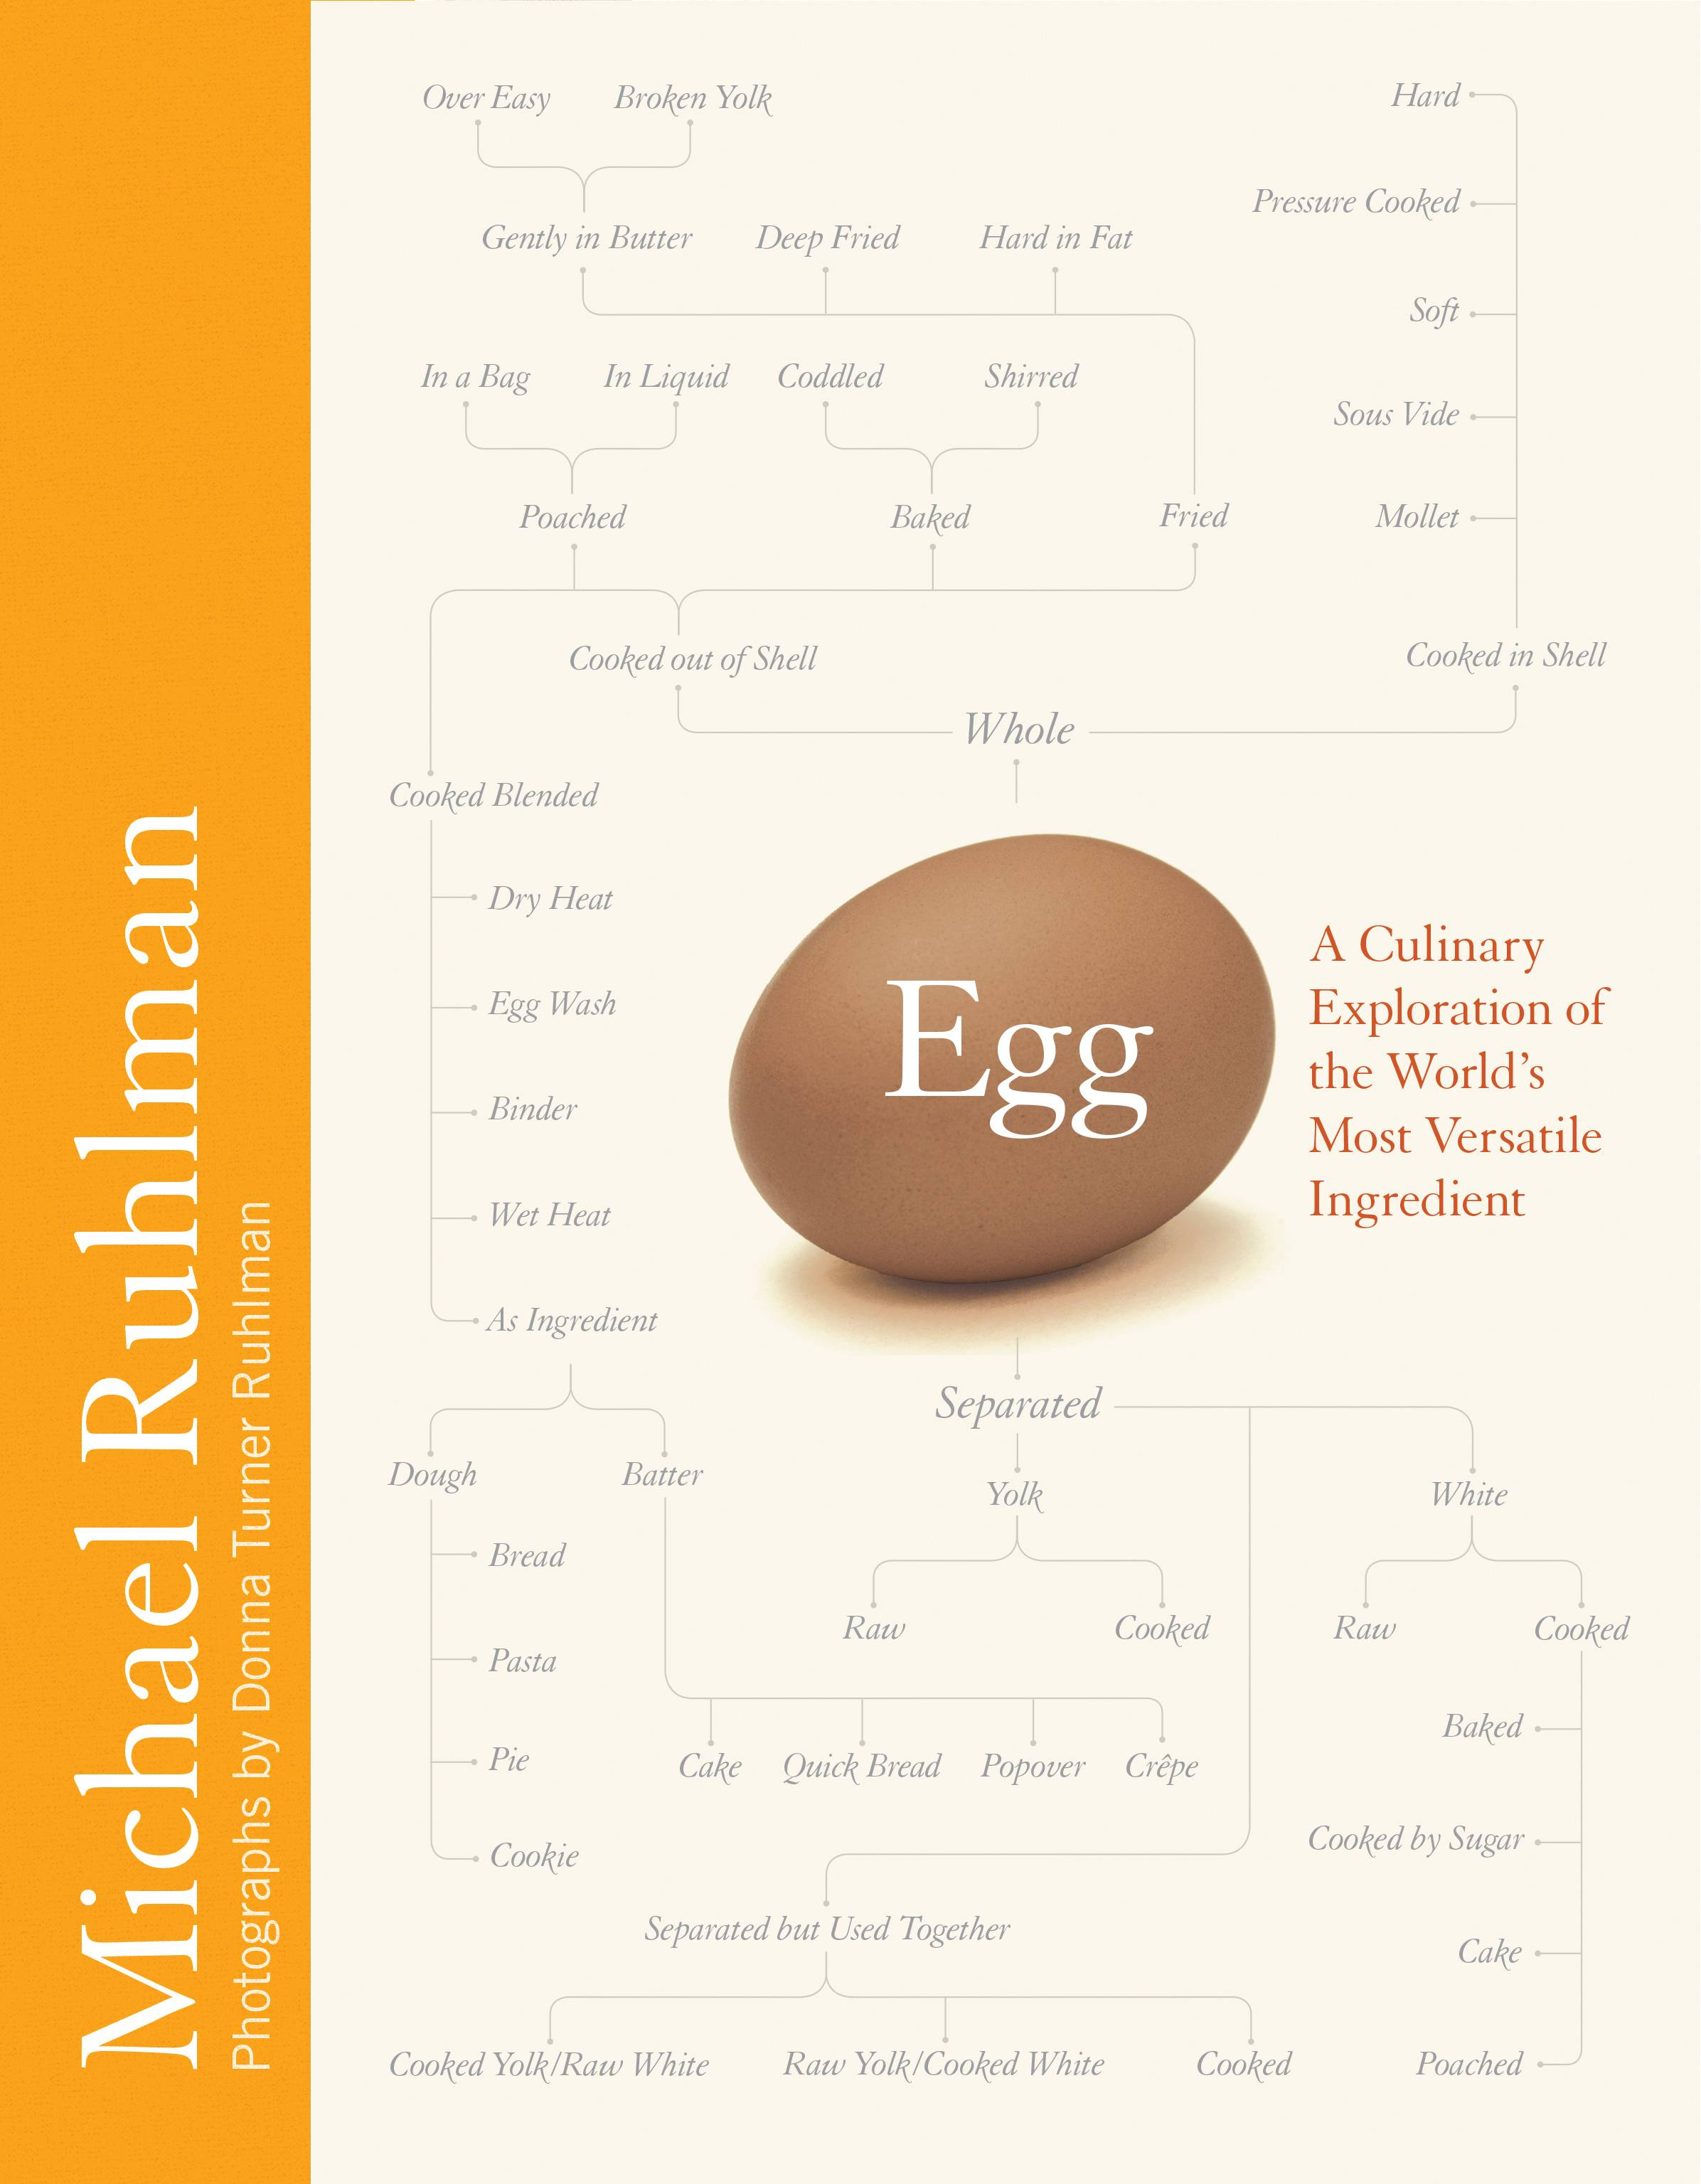 """Egg: A Culinary Exploration of the World's Most Versatile Ingredient,"" by Michael Ruhlman"